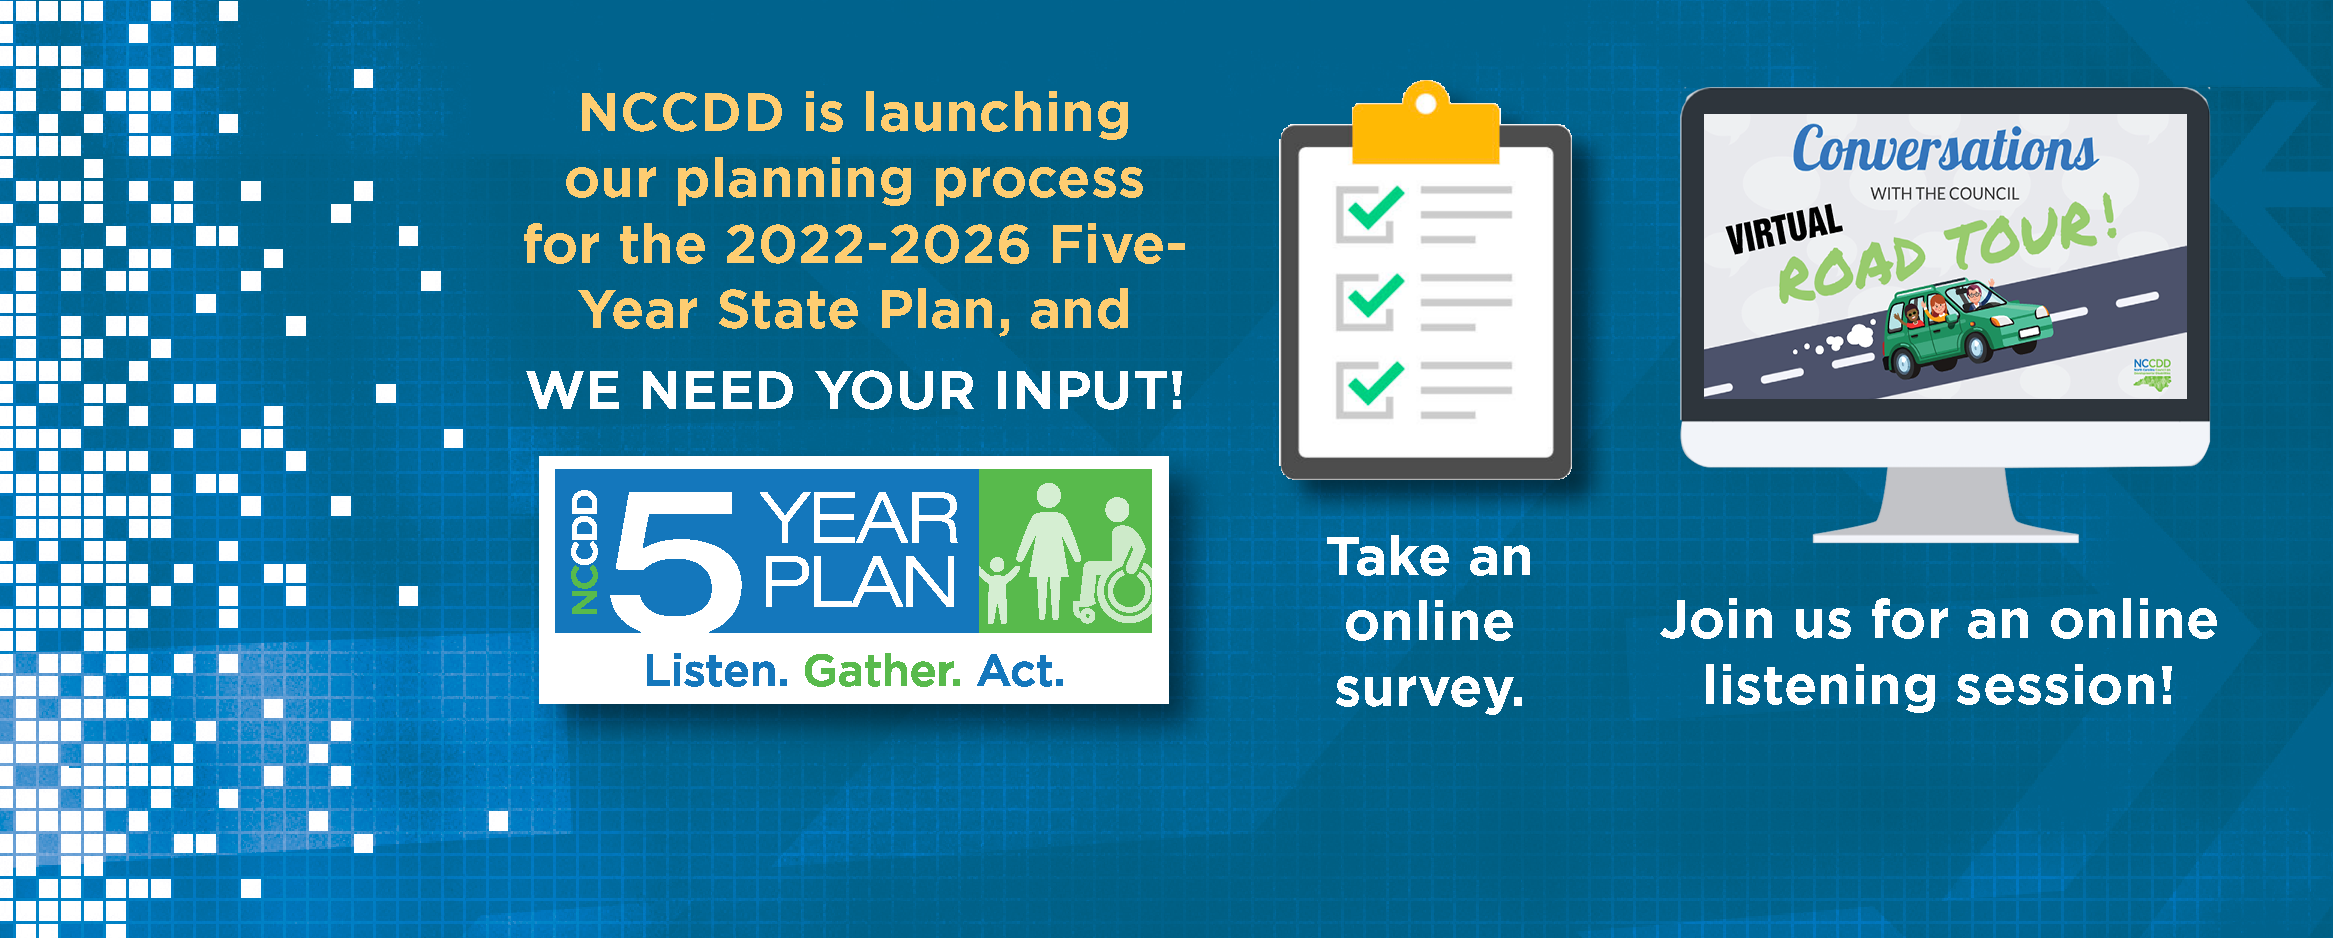 NCCDD is launching the 2022-2026 Five Year Plan and we need your input!